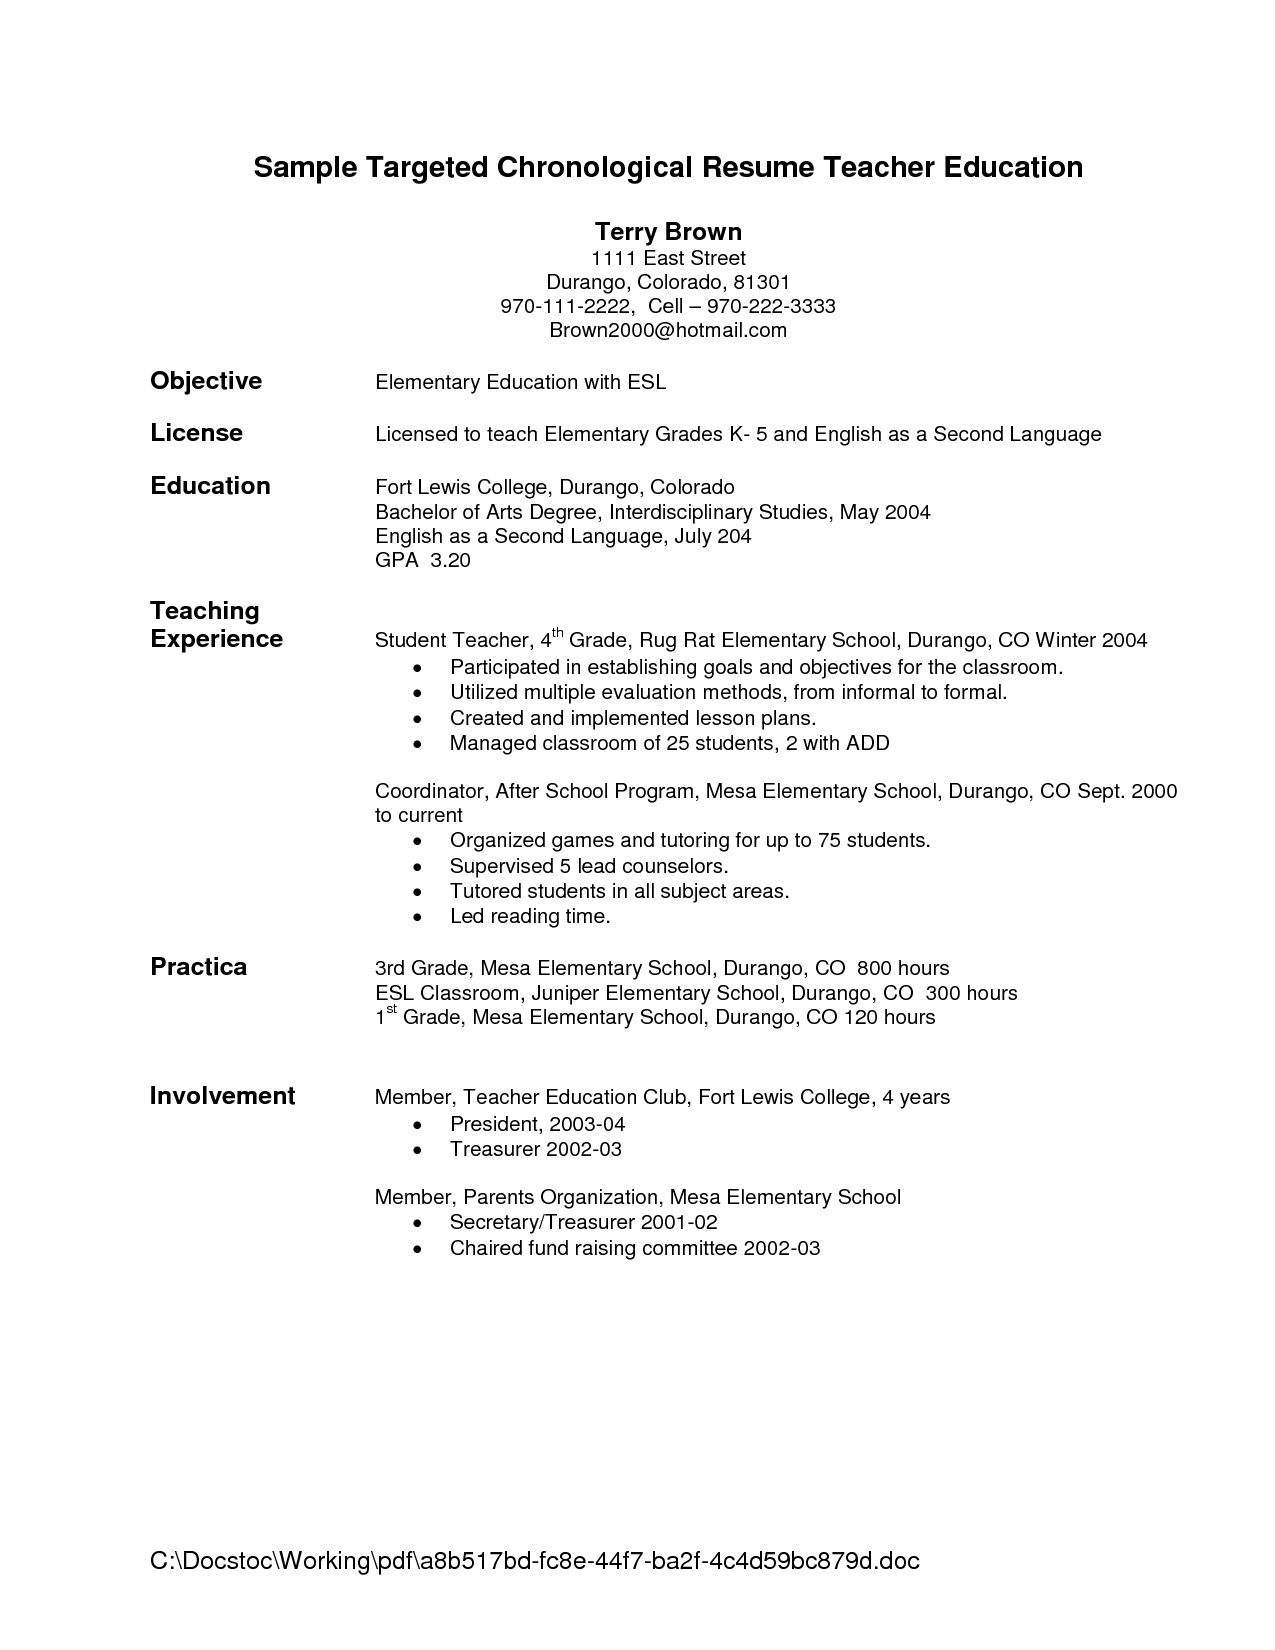 Resume Objective Statement For Teacher  HttpJobresumesample